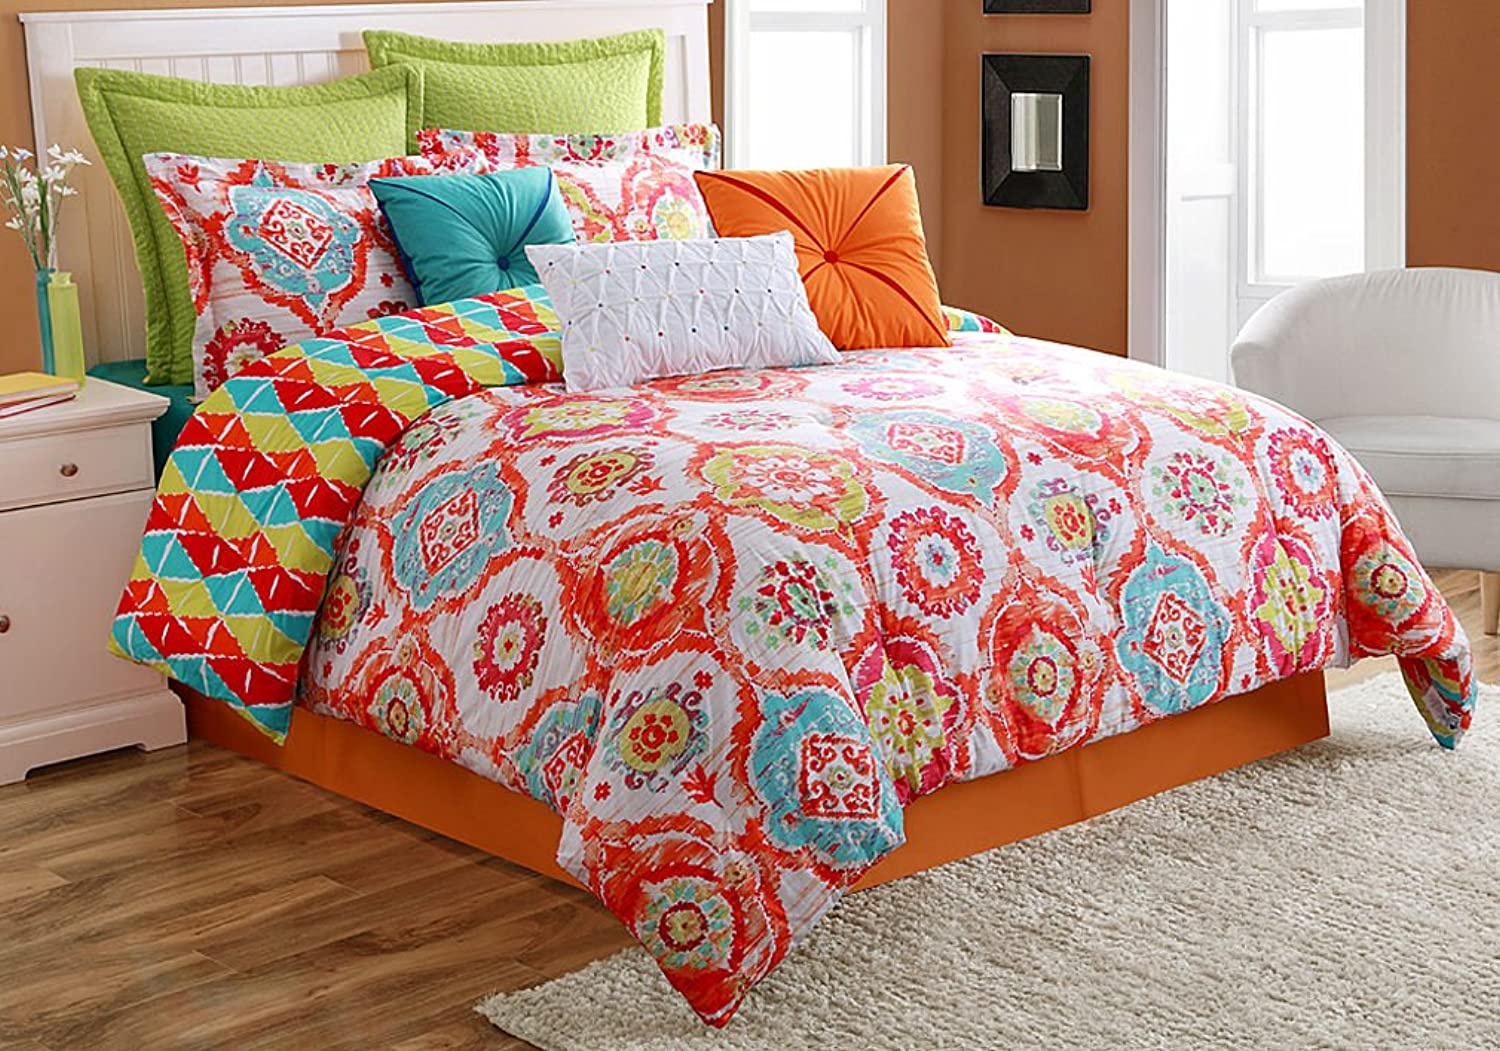 Fiesta 4-Piece Ava Comforter Set-Queen with Coordinating Bed Skirt and 2 Pillow Shams